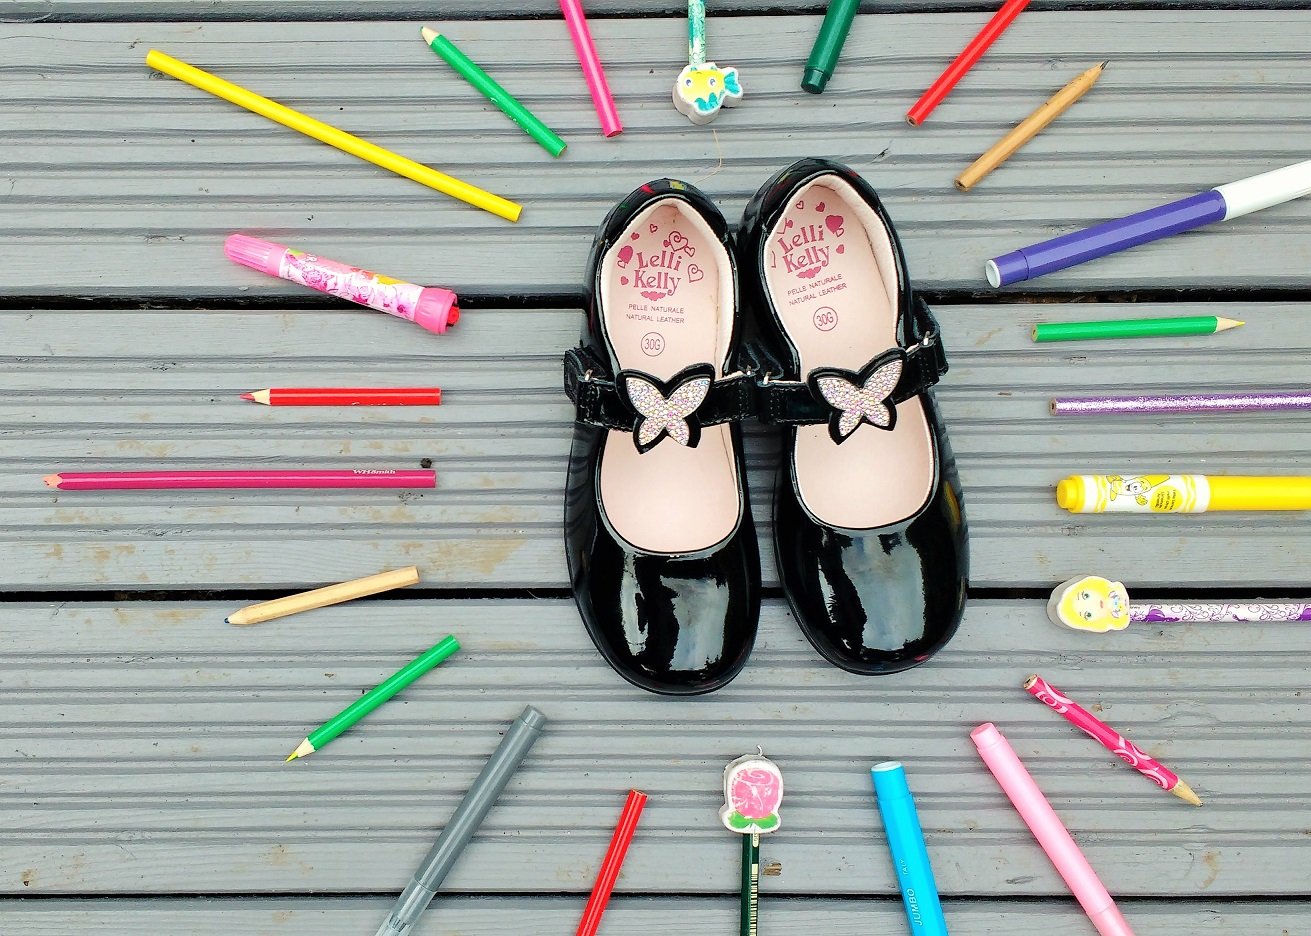 Jake Shoes Lelli Kelly Review Giveaway Pencils Parenting Blog